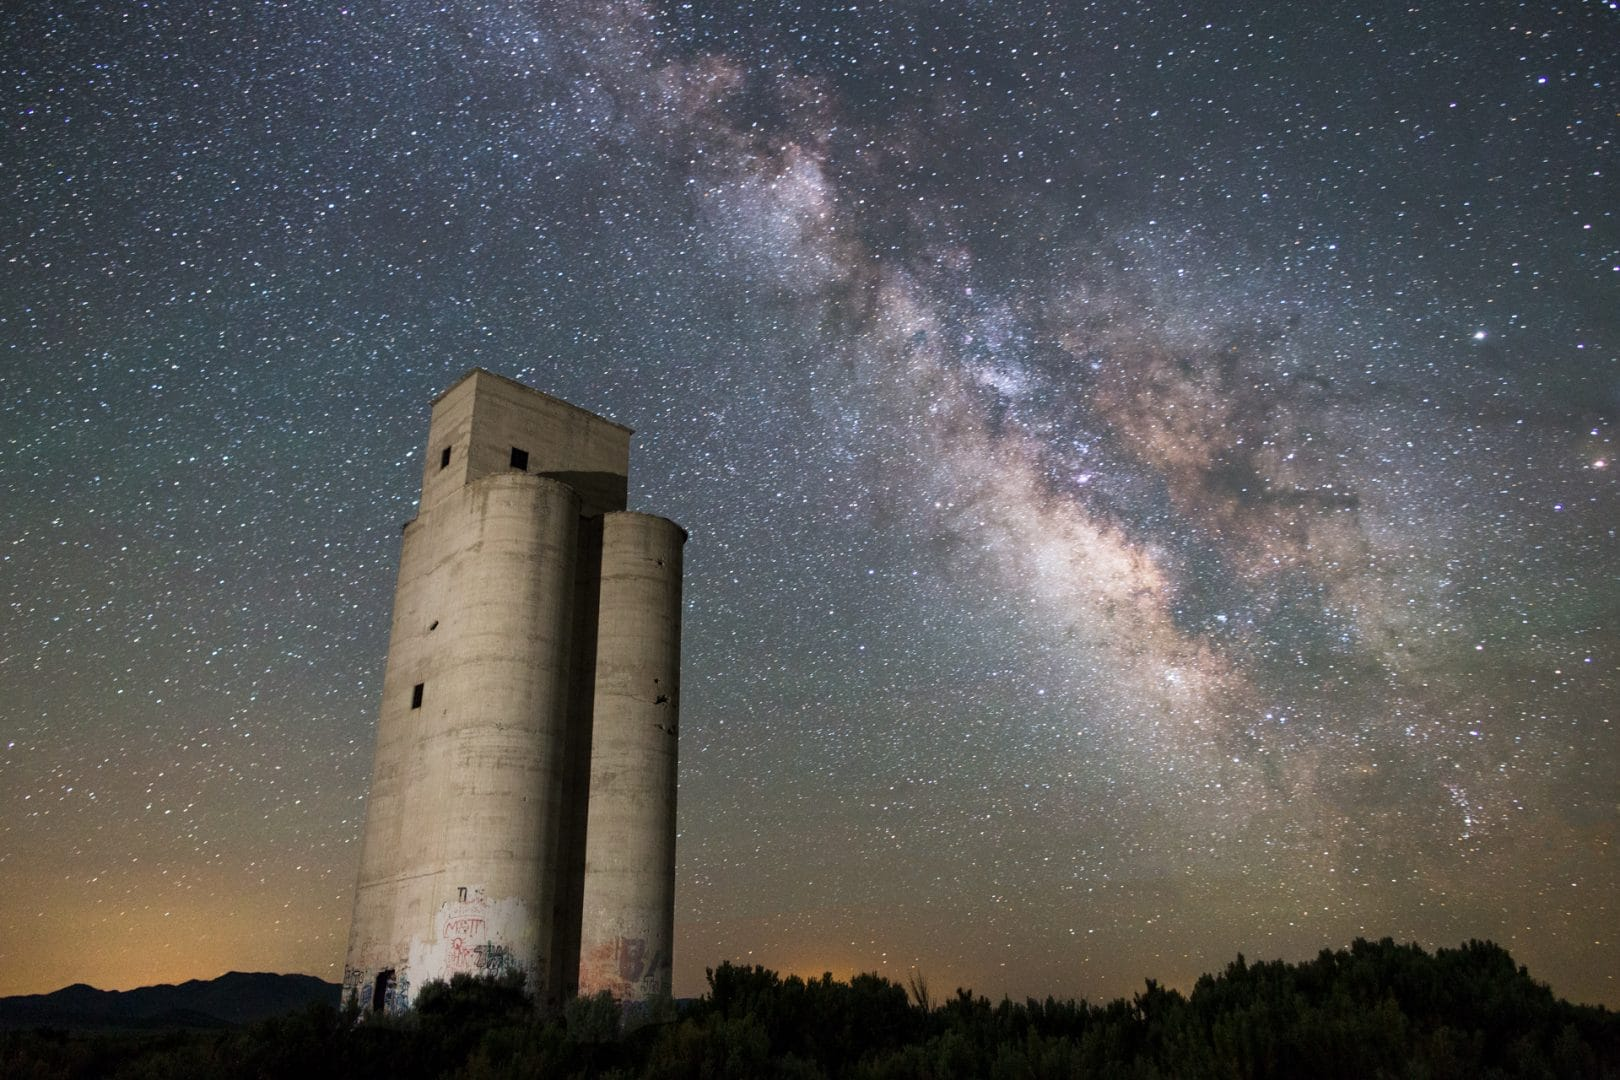 Milky Way over a tall abandoned silo showing the benefits of composition tip for Milky Way Photography number 1: Make sure you have an interesting tall subject that can break the planes of the rule of thirds in your composition.